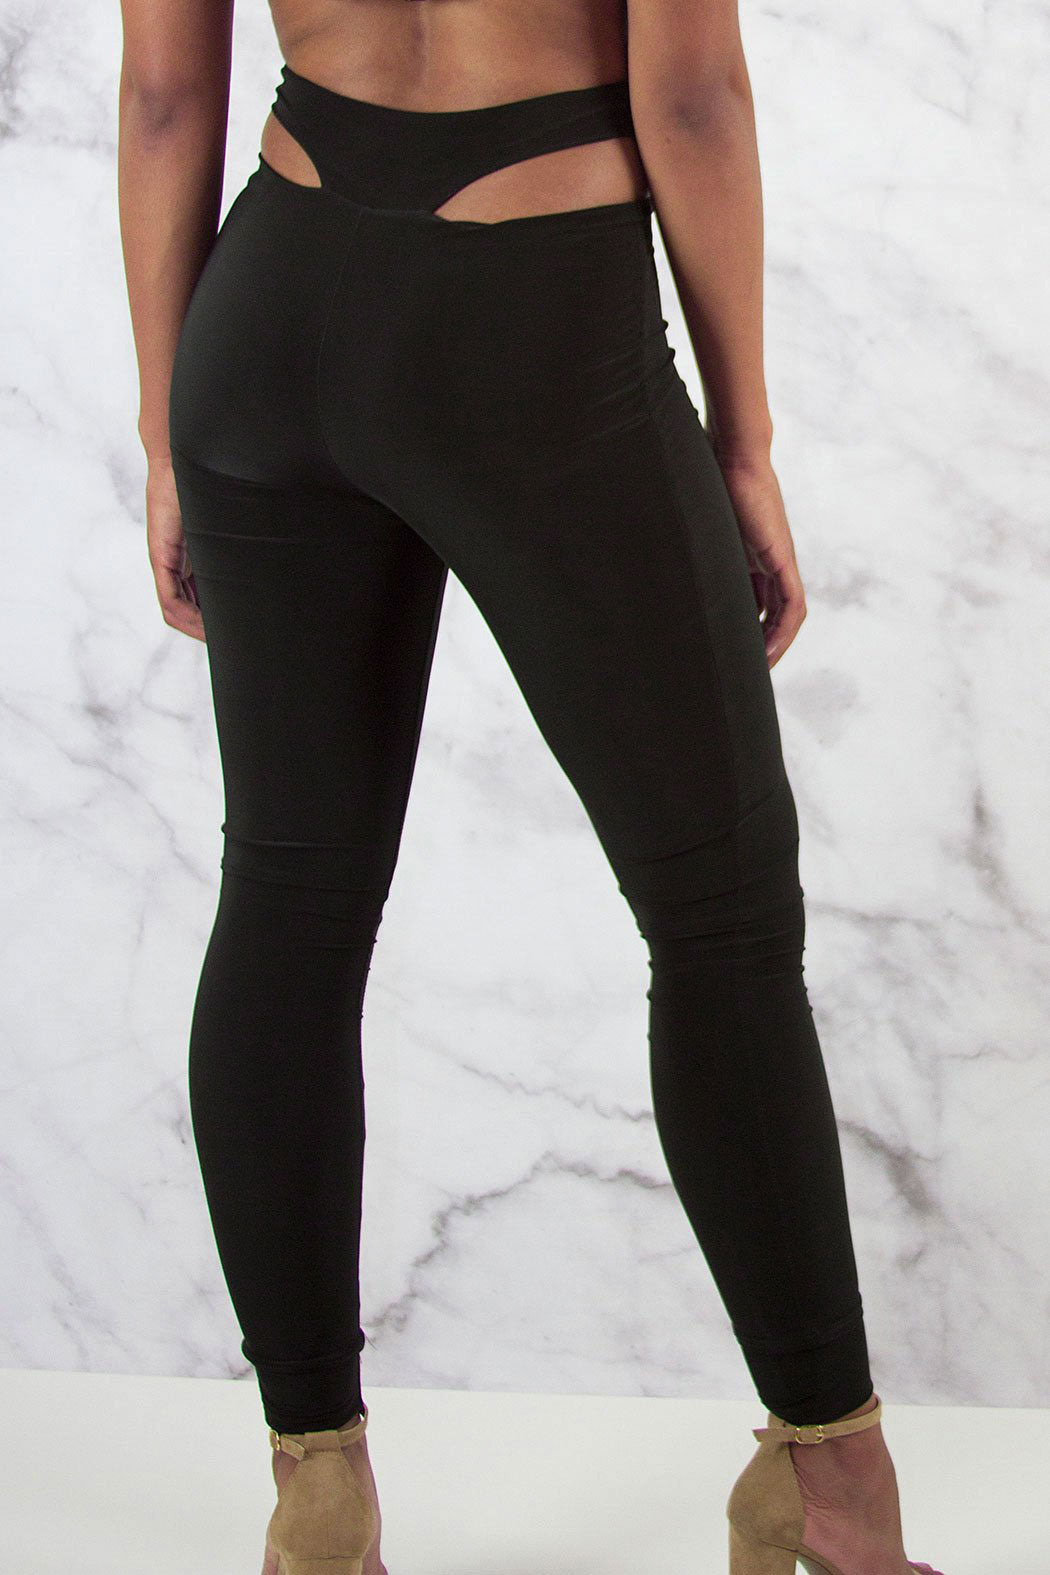 Slinky High Waist Cut Out Leggings - Snatched